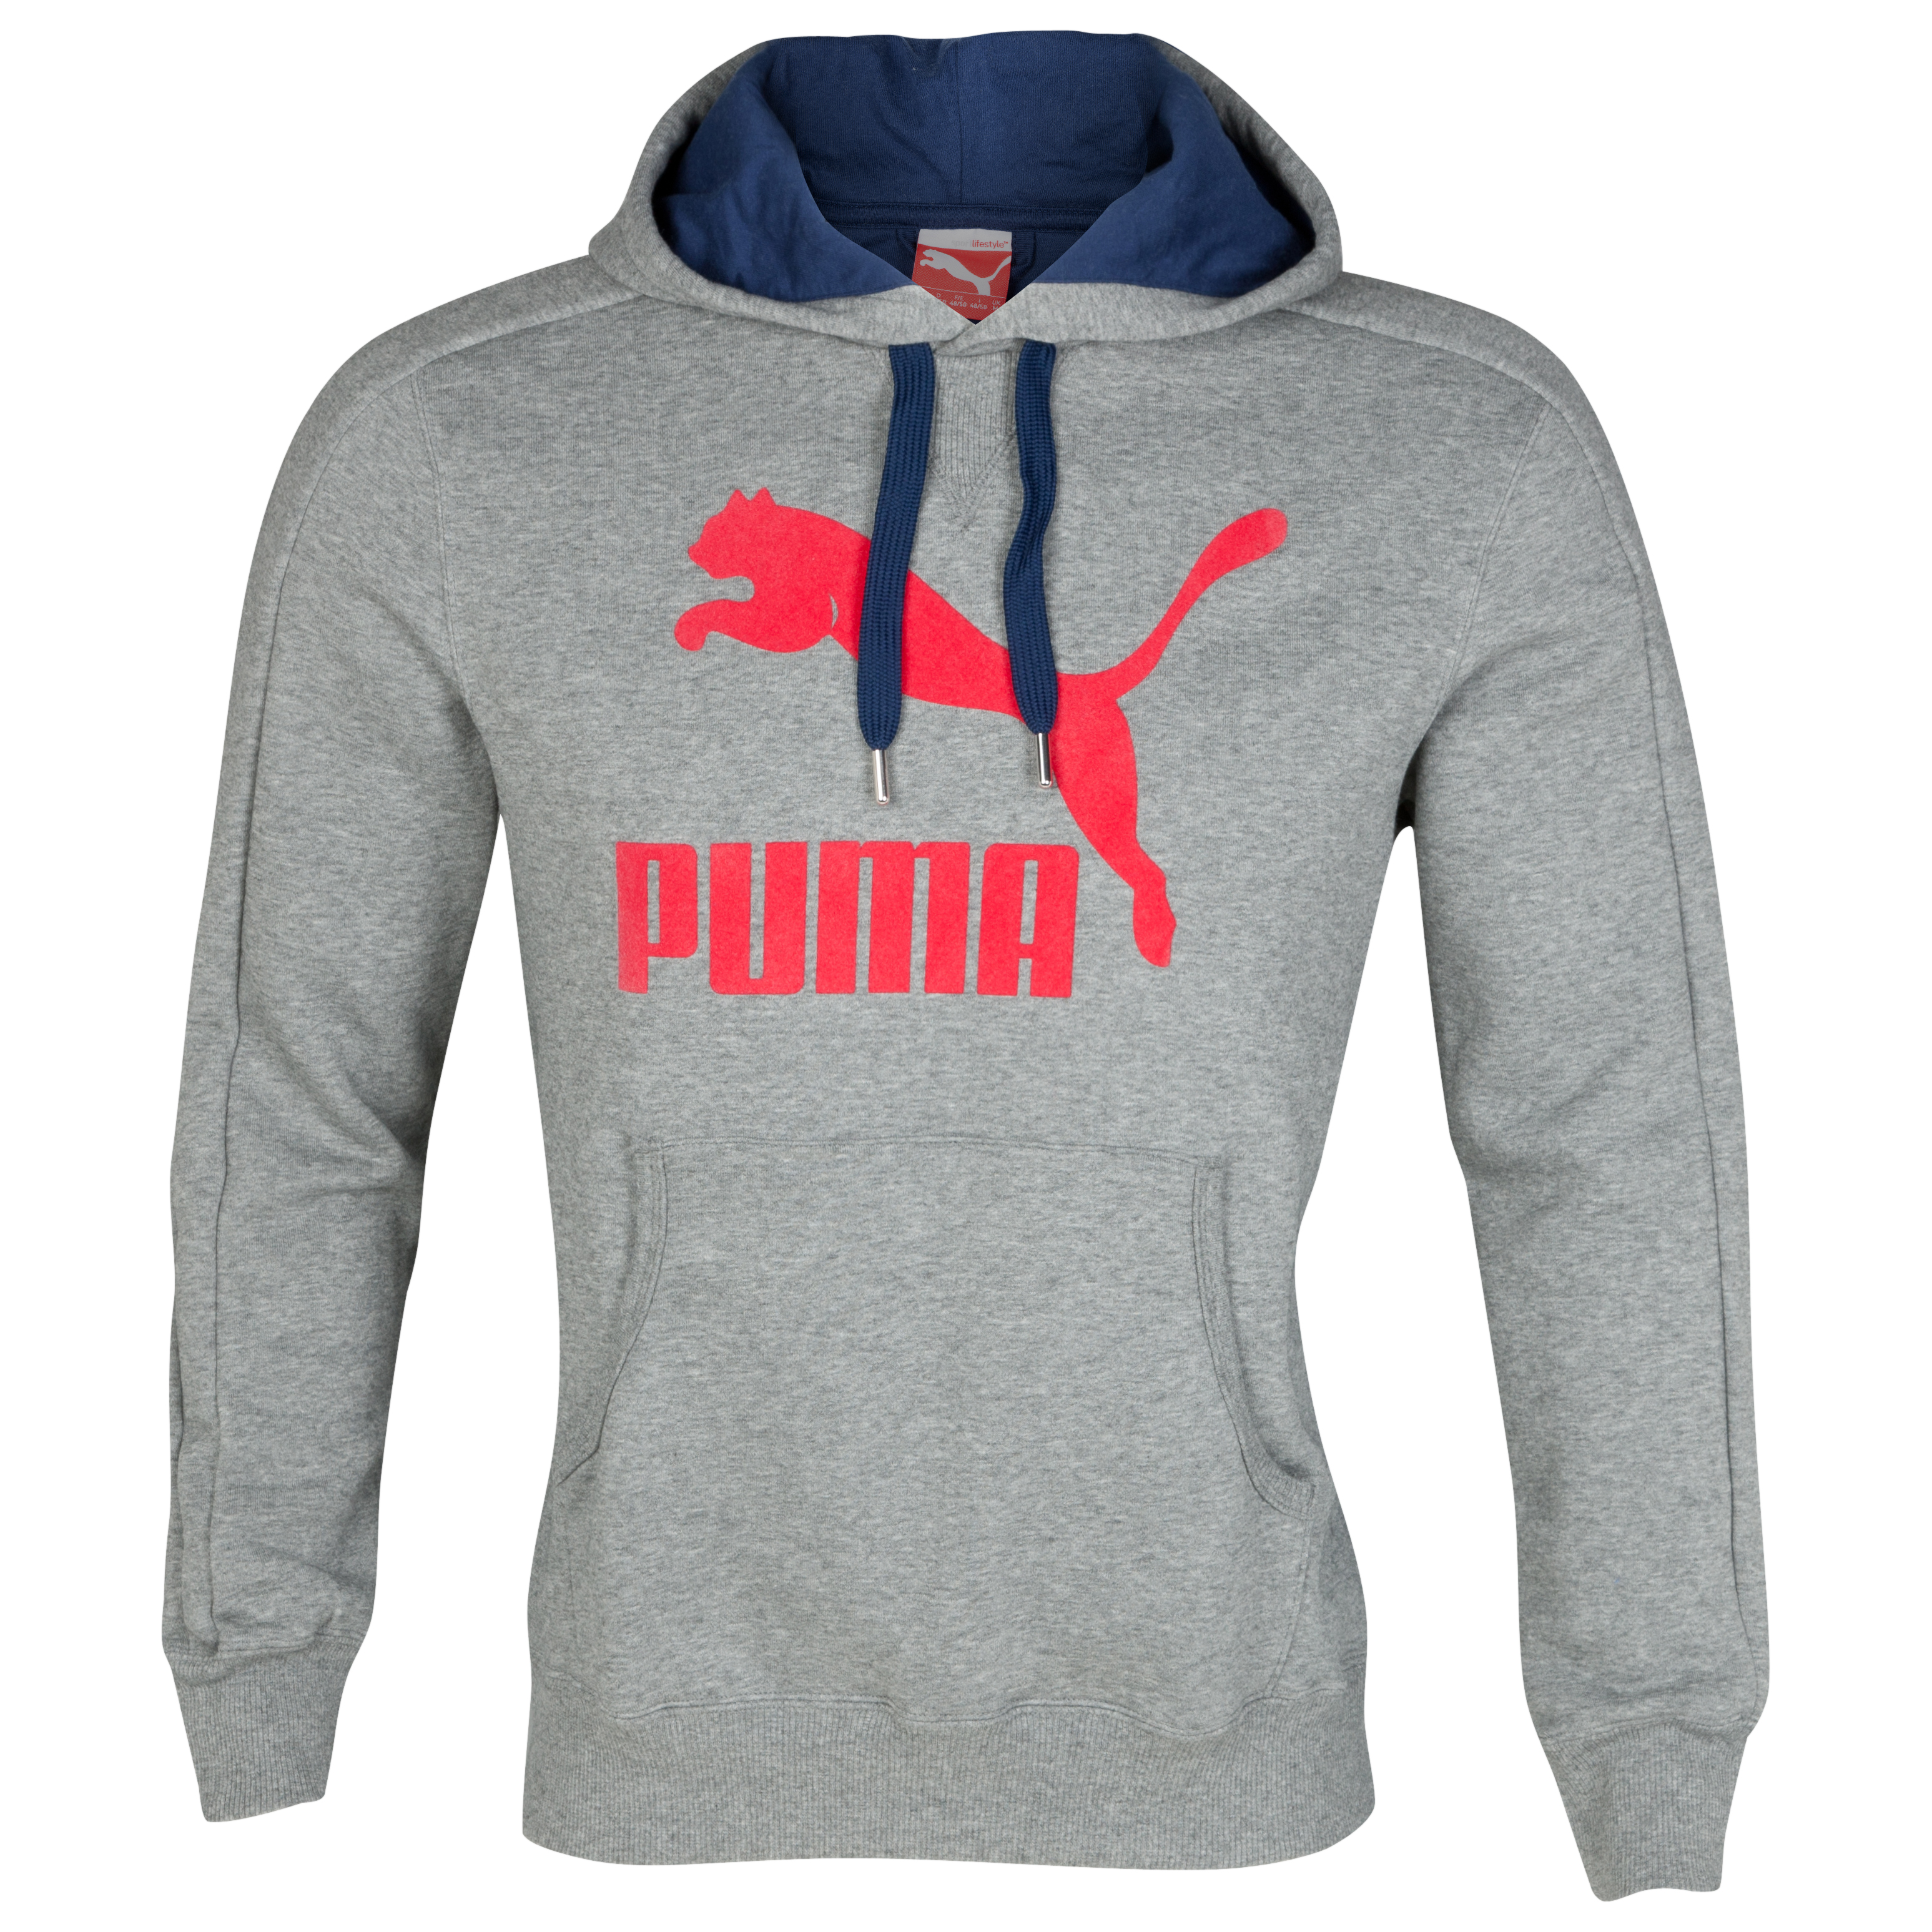 Puma Logo Hoody - Medium Gray Heather